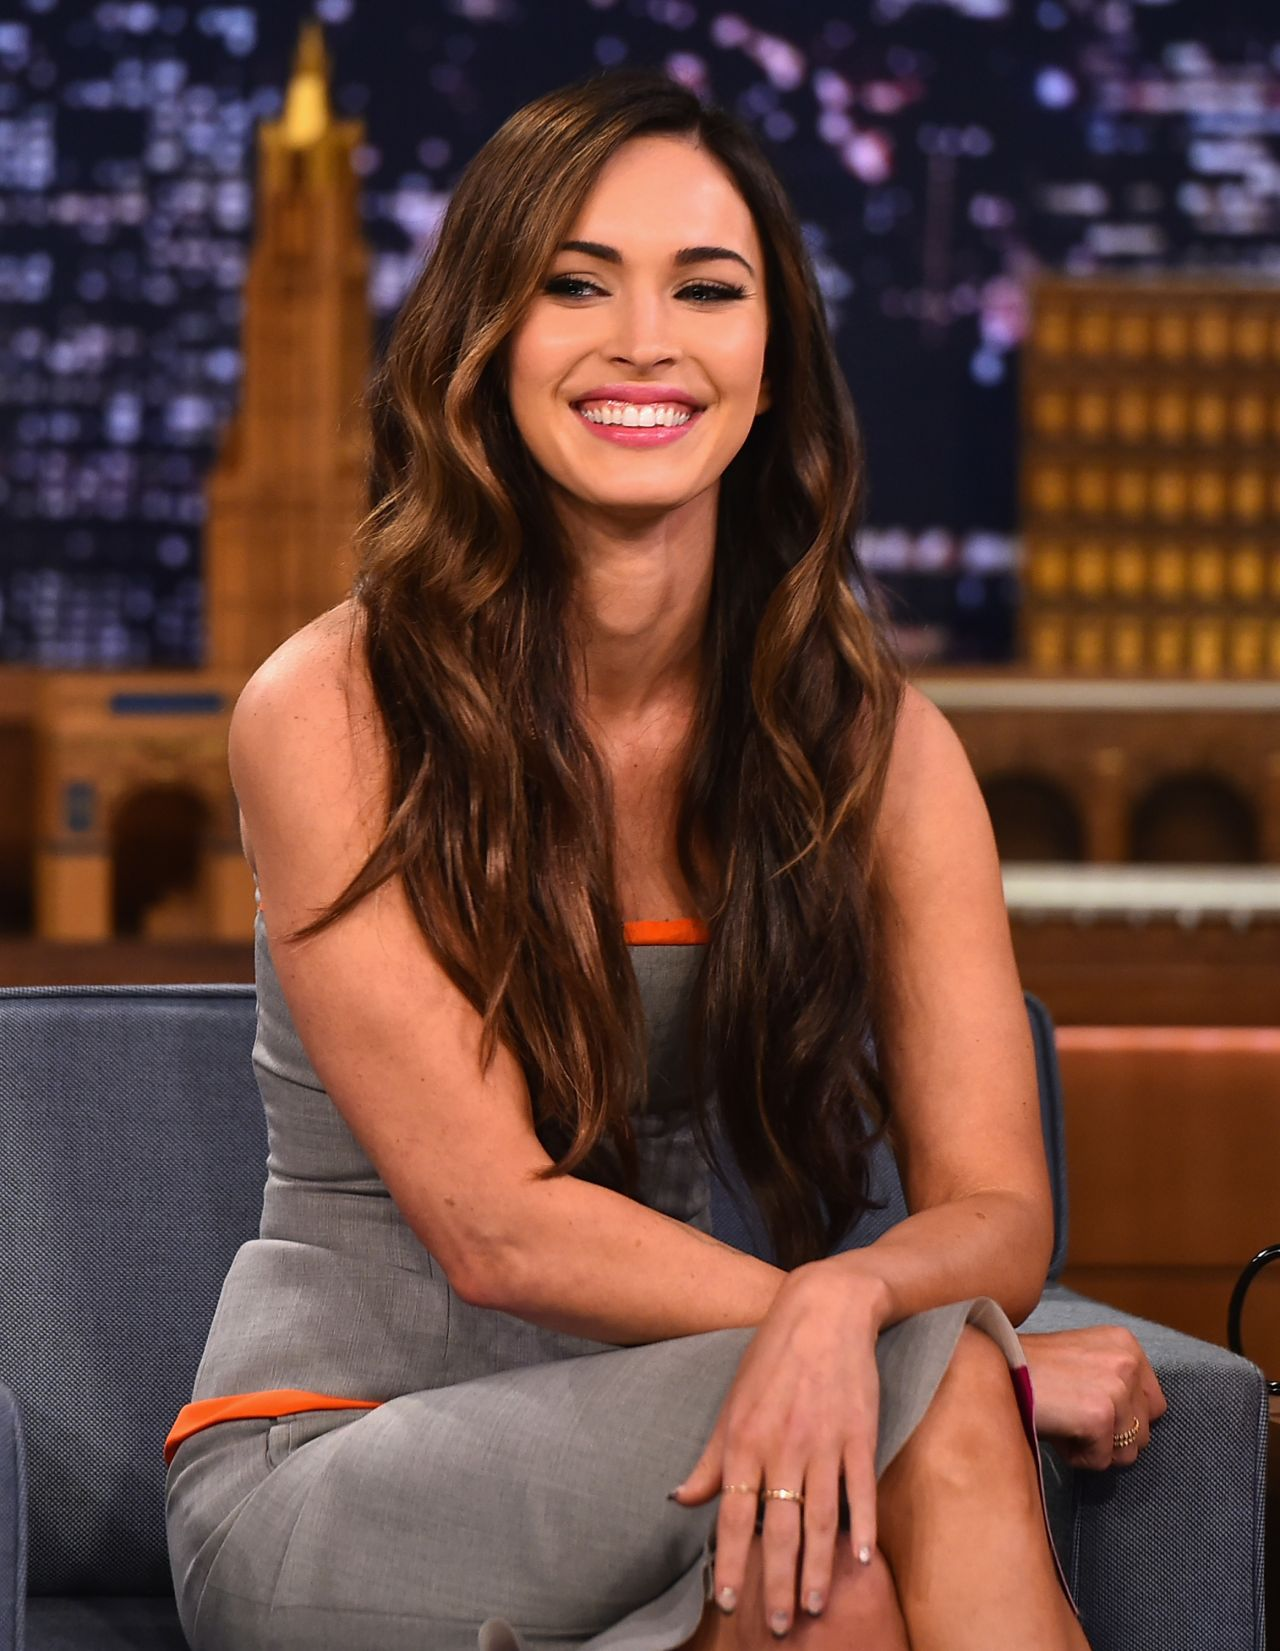 Megan Fox Appeared on The Tonight Show Starring Jimmy Fallon in NYC - August 2014